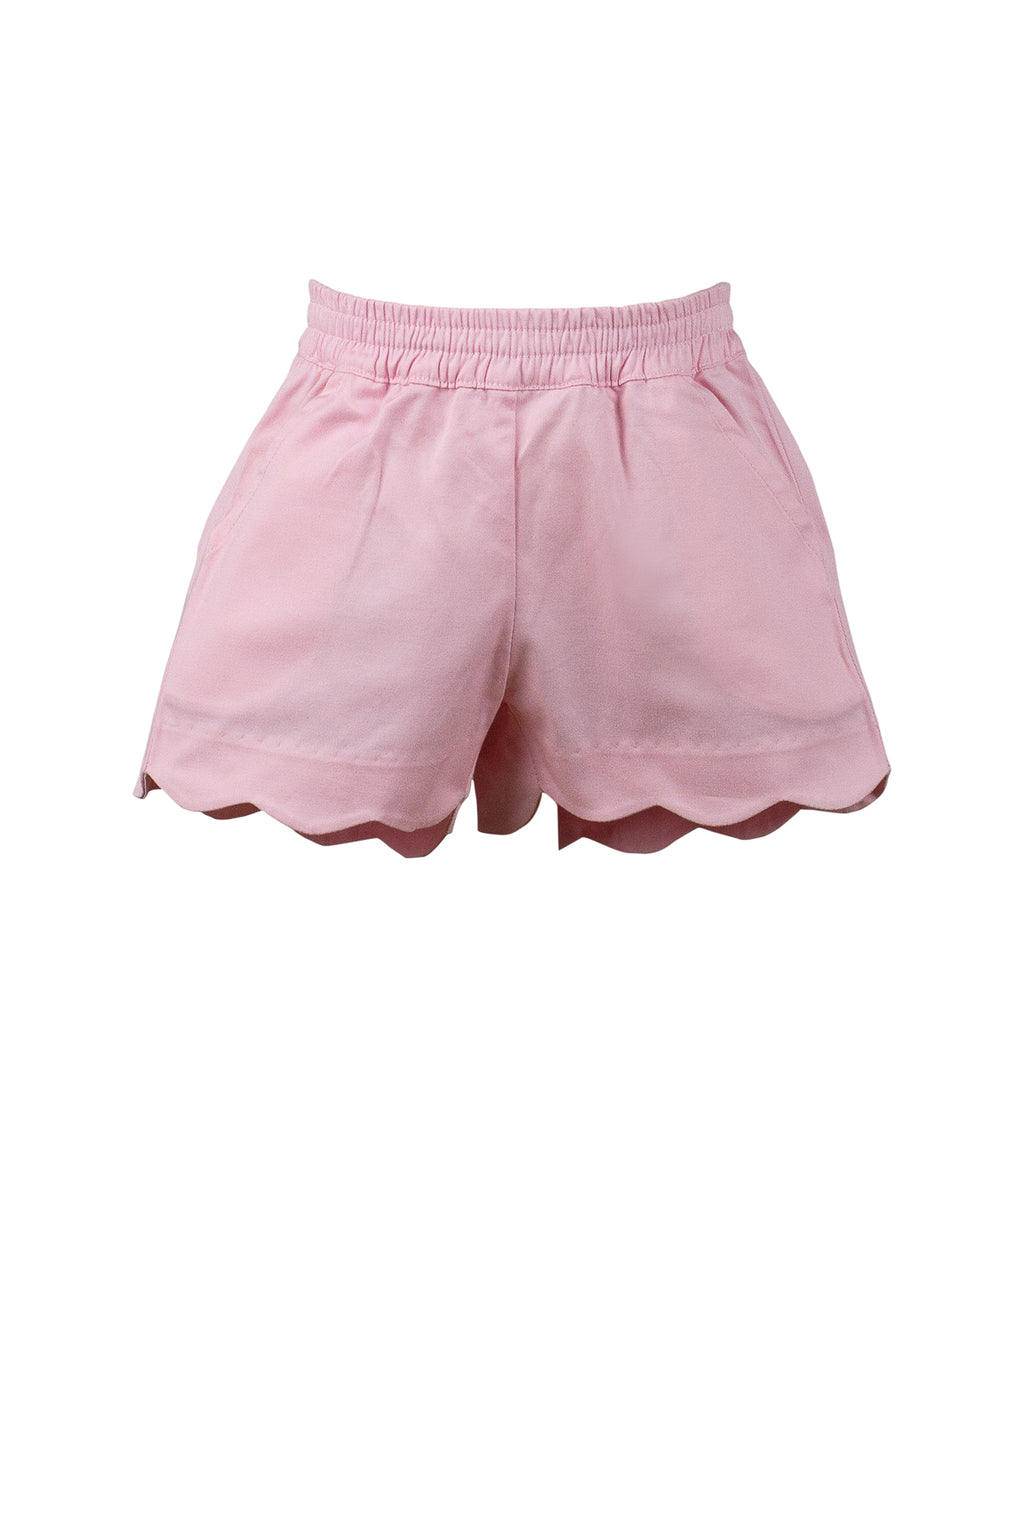 Pre-Order Girl Scallop Shorts - Pink - Born Childrens Boutique